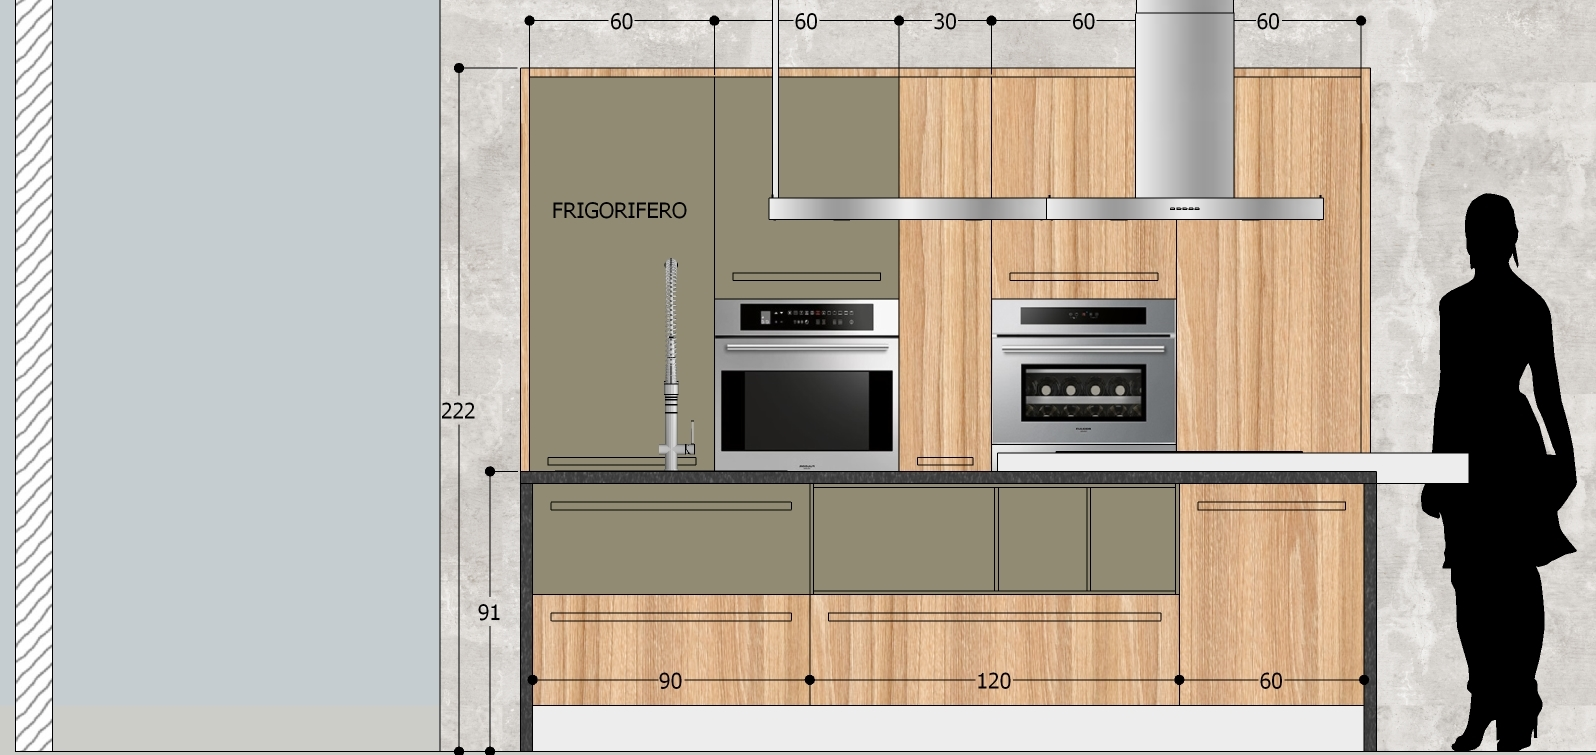 Progetti Cucine Con Isola. Progetti Cucine Con Isola With Progetti ...